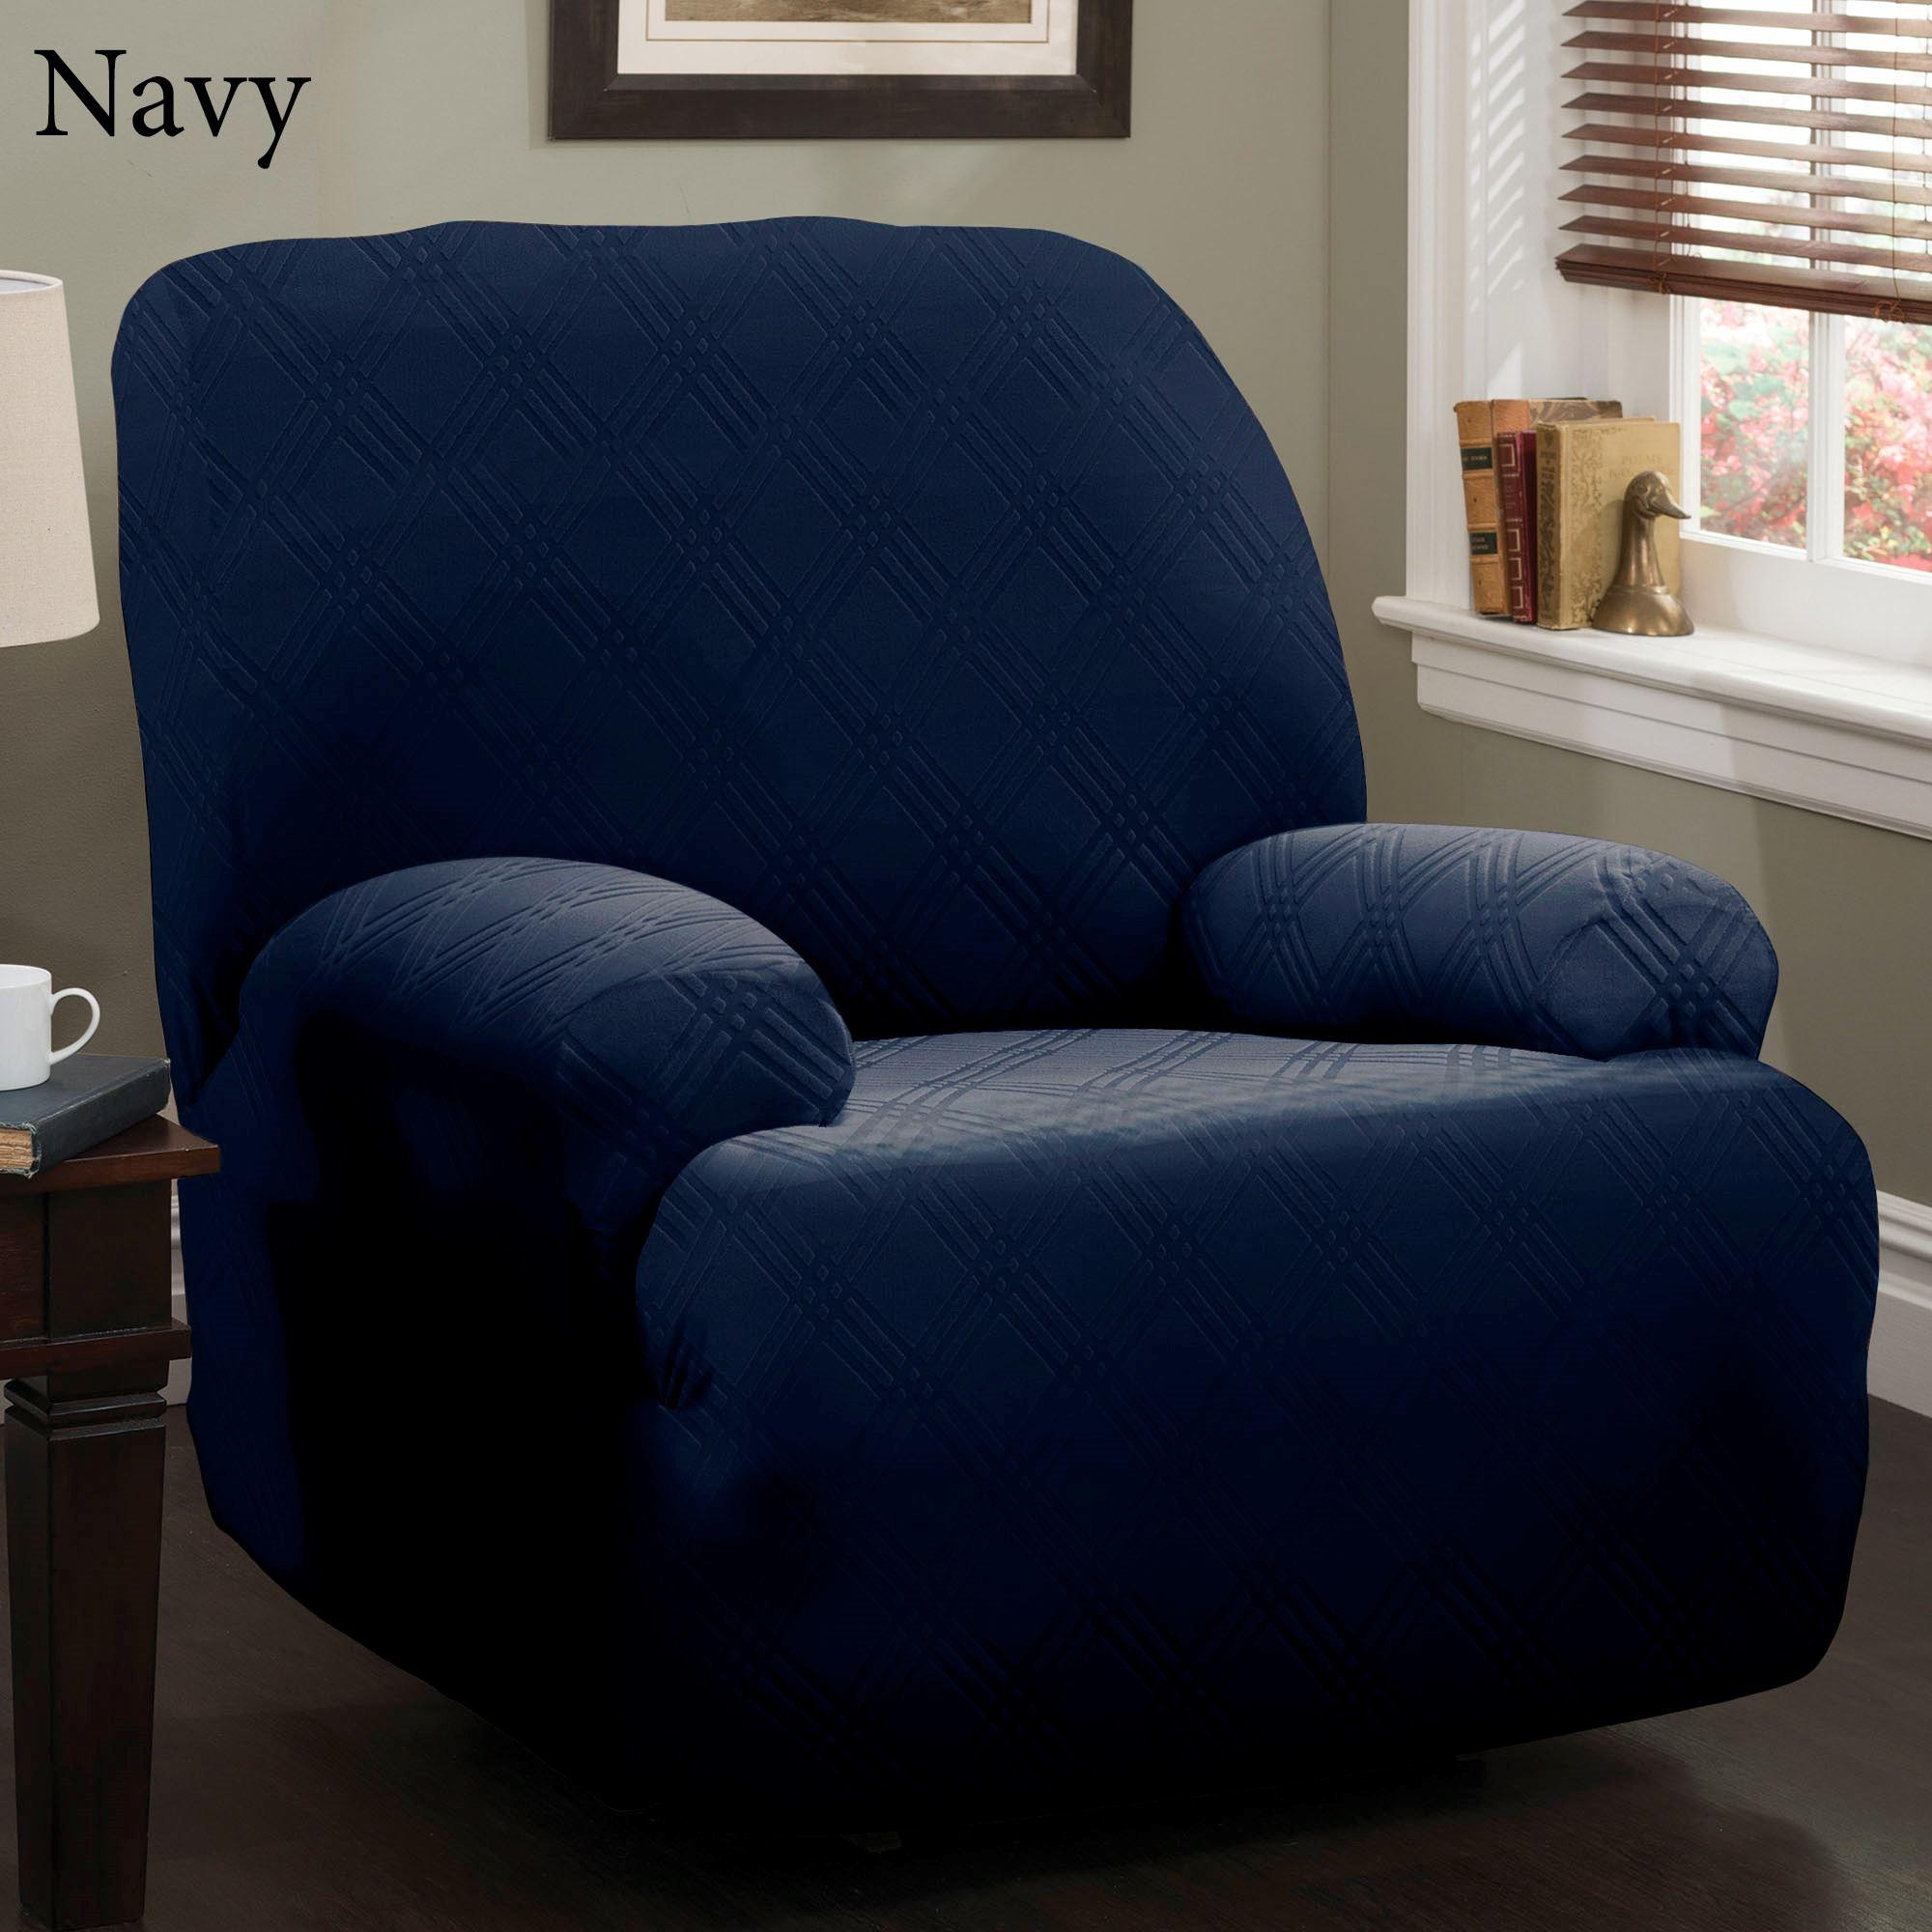 Double Diamond Stretch Jumbo Recliner Slipcovers Throughout Navy Blue Slipcovers (Image 2 of 20)